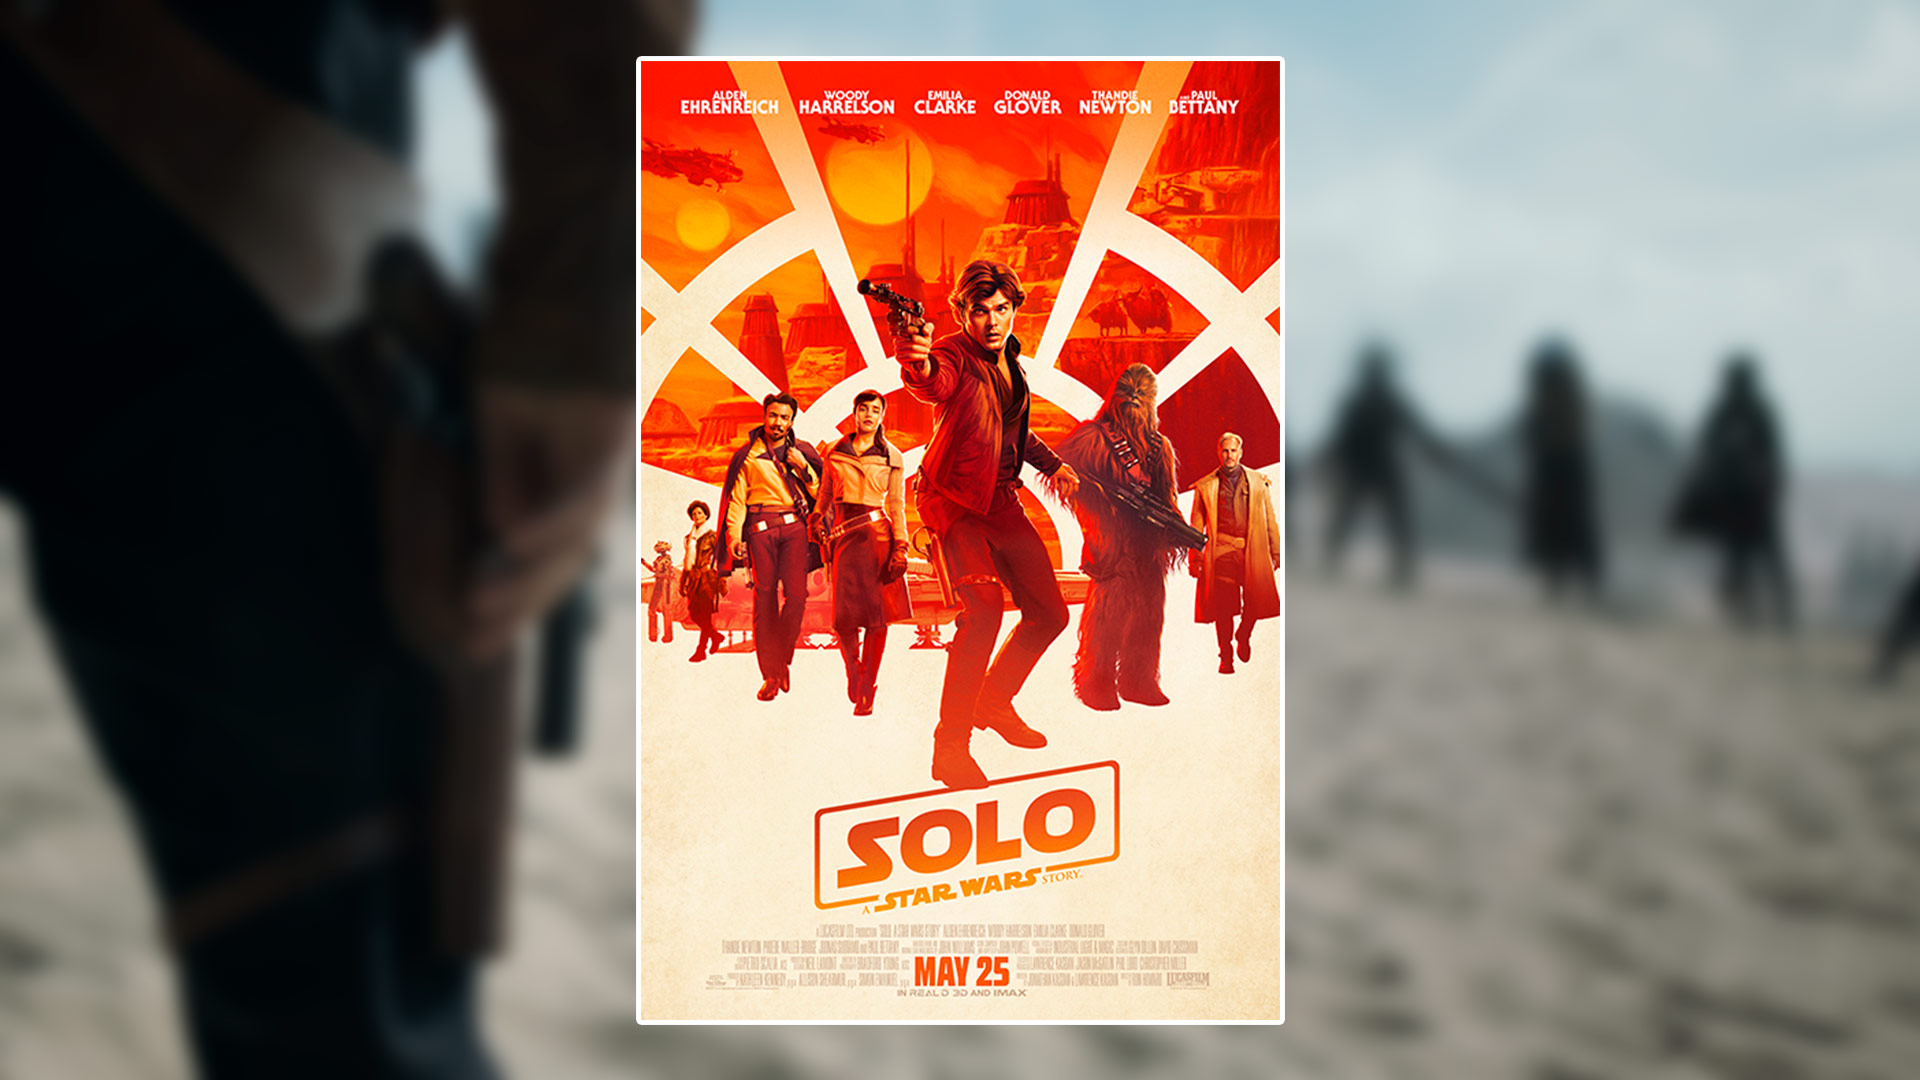 Critique du film Solo: A Star Wars Story